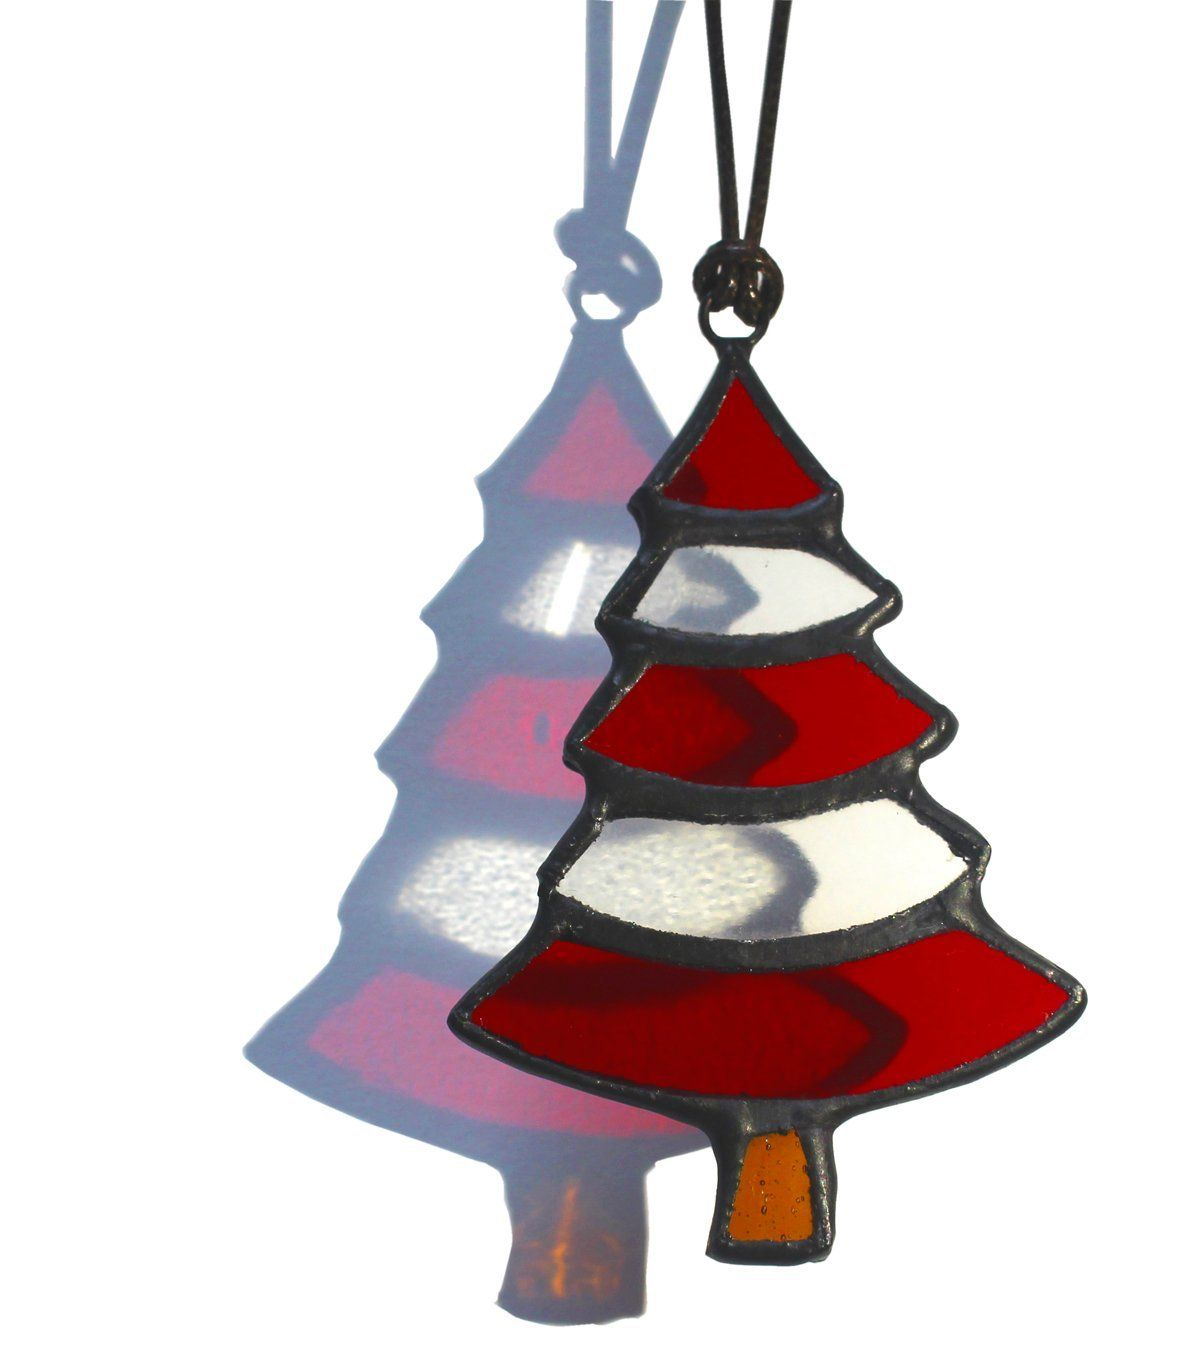 Cheap Free Stained Glass Christmas Ornament Patterns Find Free Stained Glass Christmas Glass Christmas Ornaments Stained Glass Ornaments